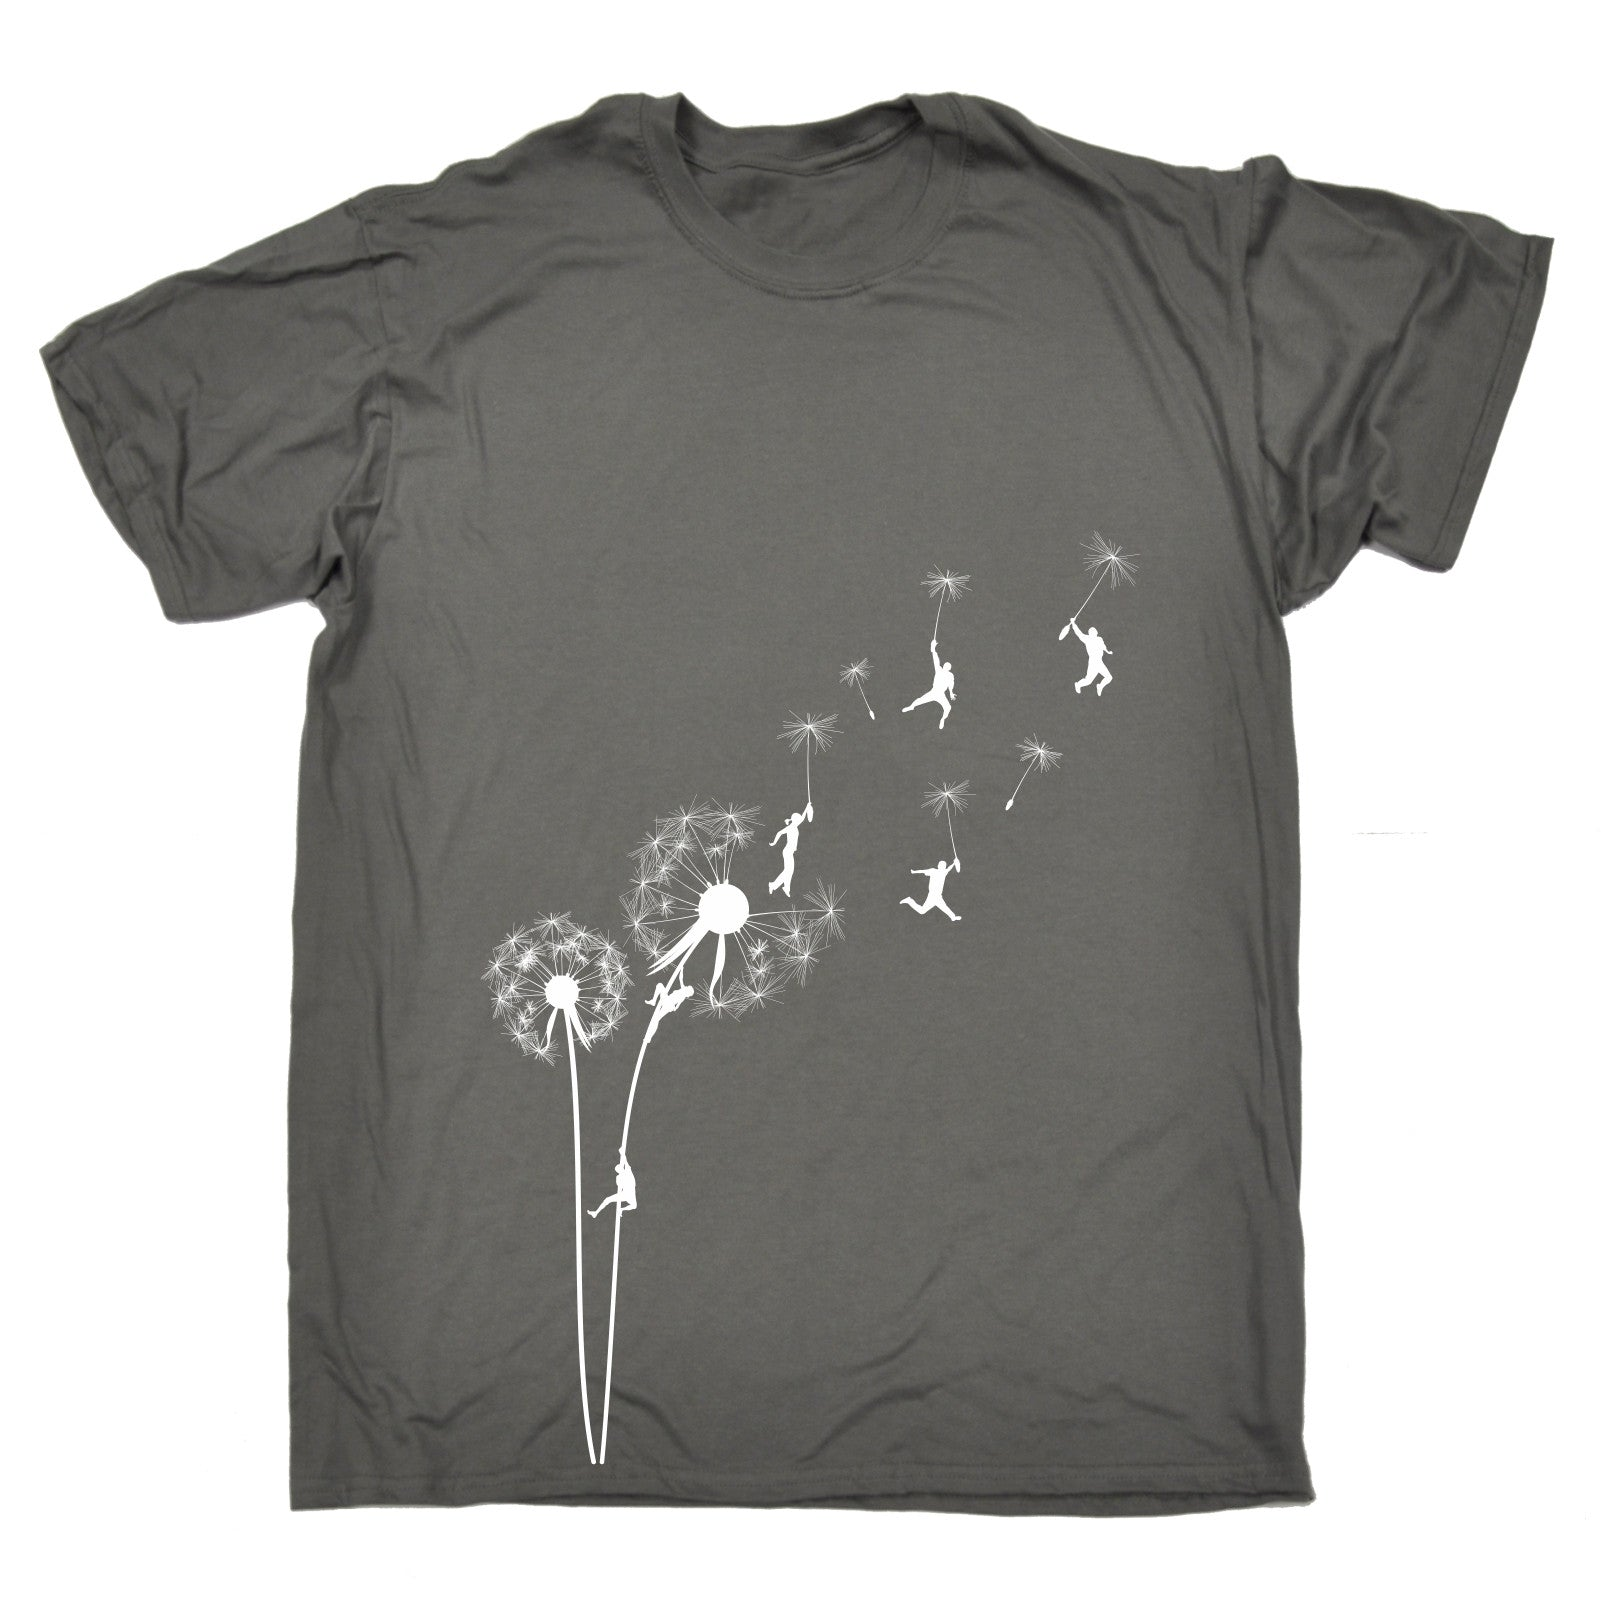 Dandelion flower graphic climbing t shirt tee seed for Graphic design t shirts uk